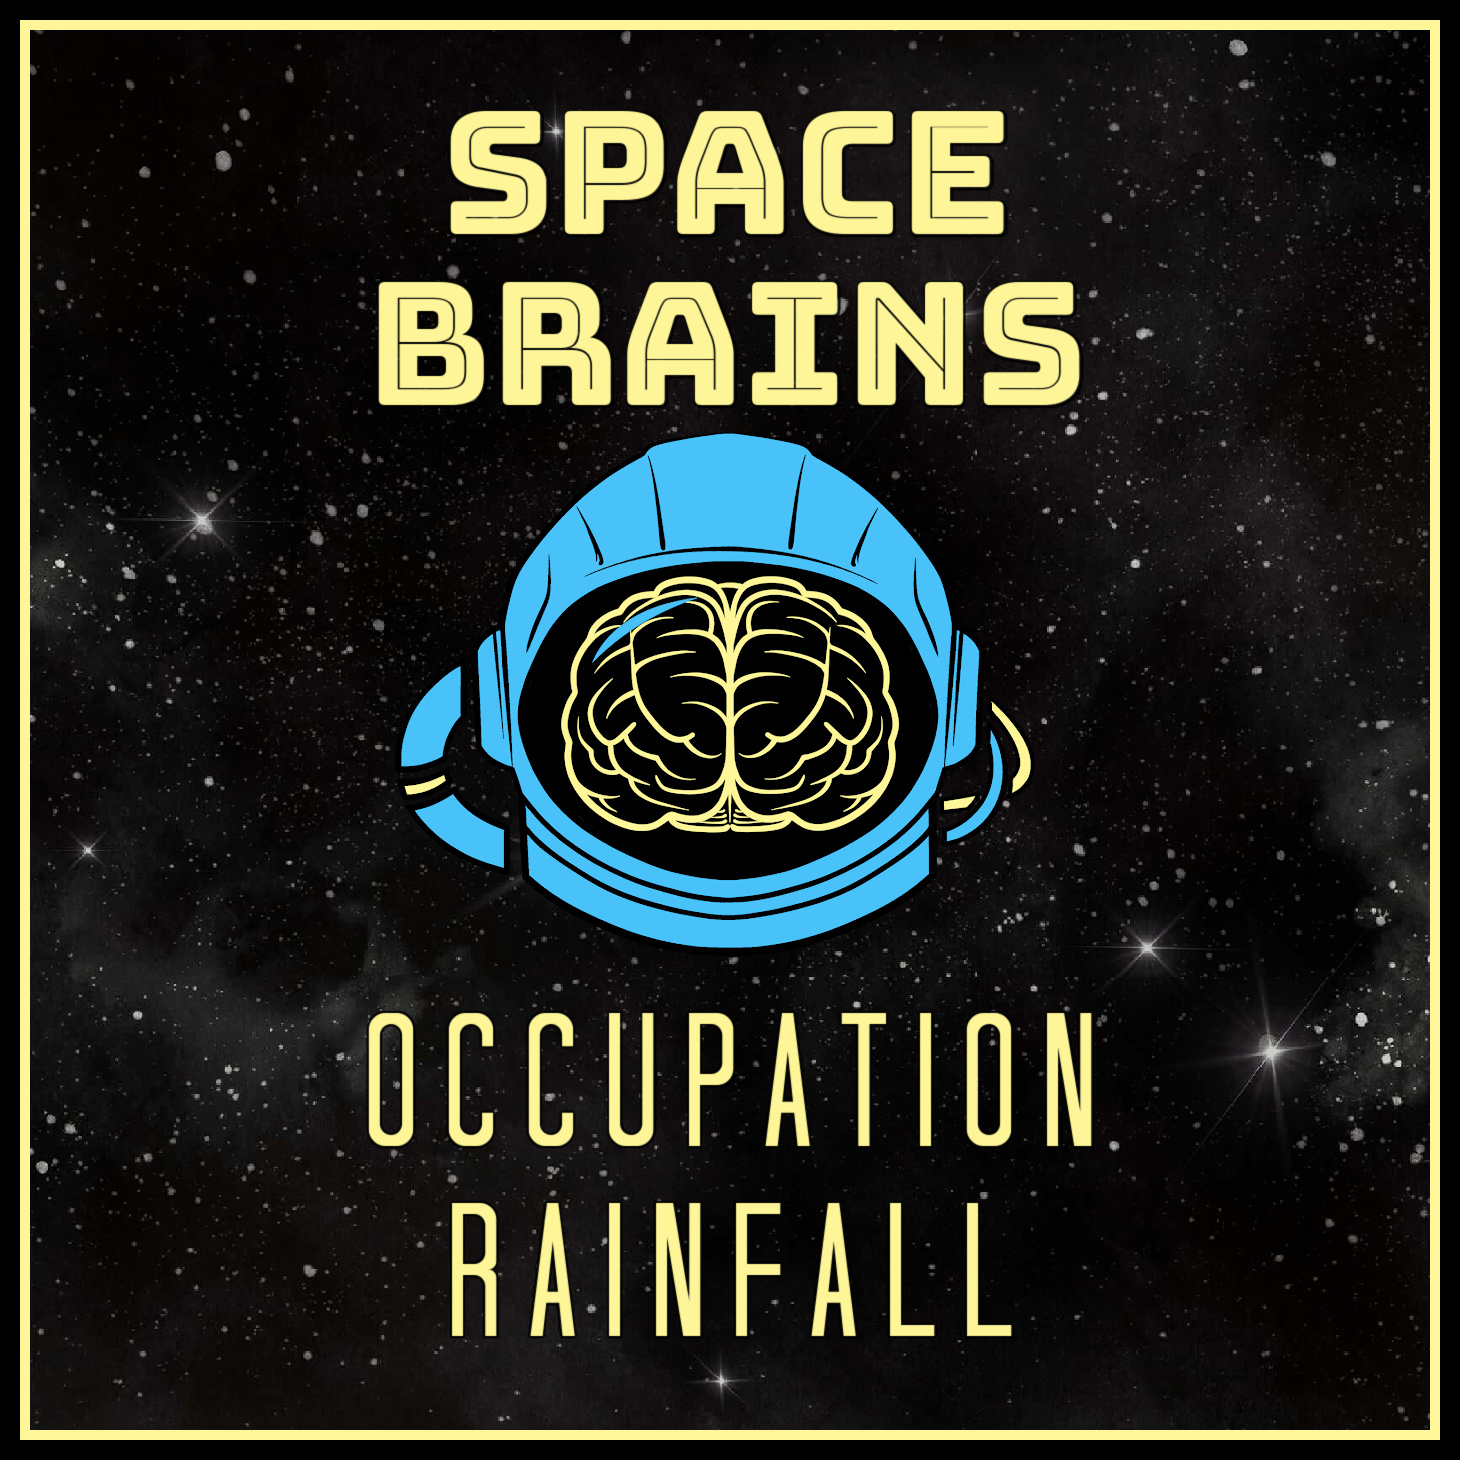 Space Brains - 42 - Occupation Rainfall